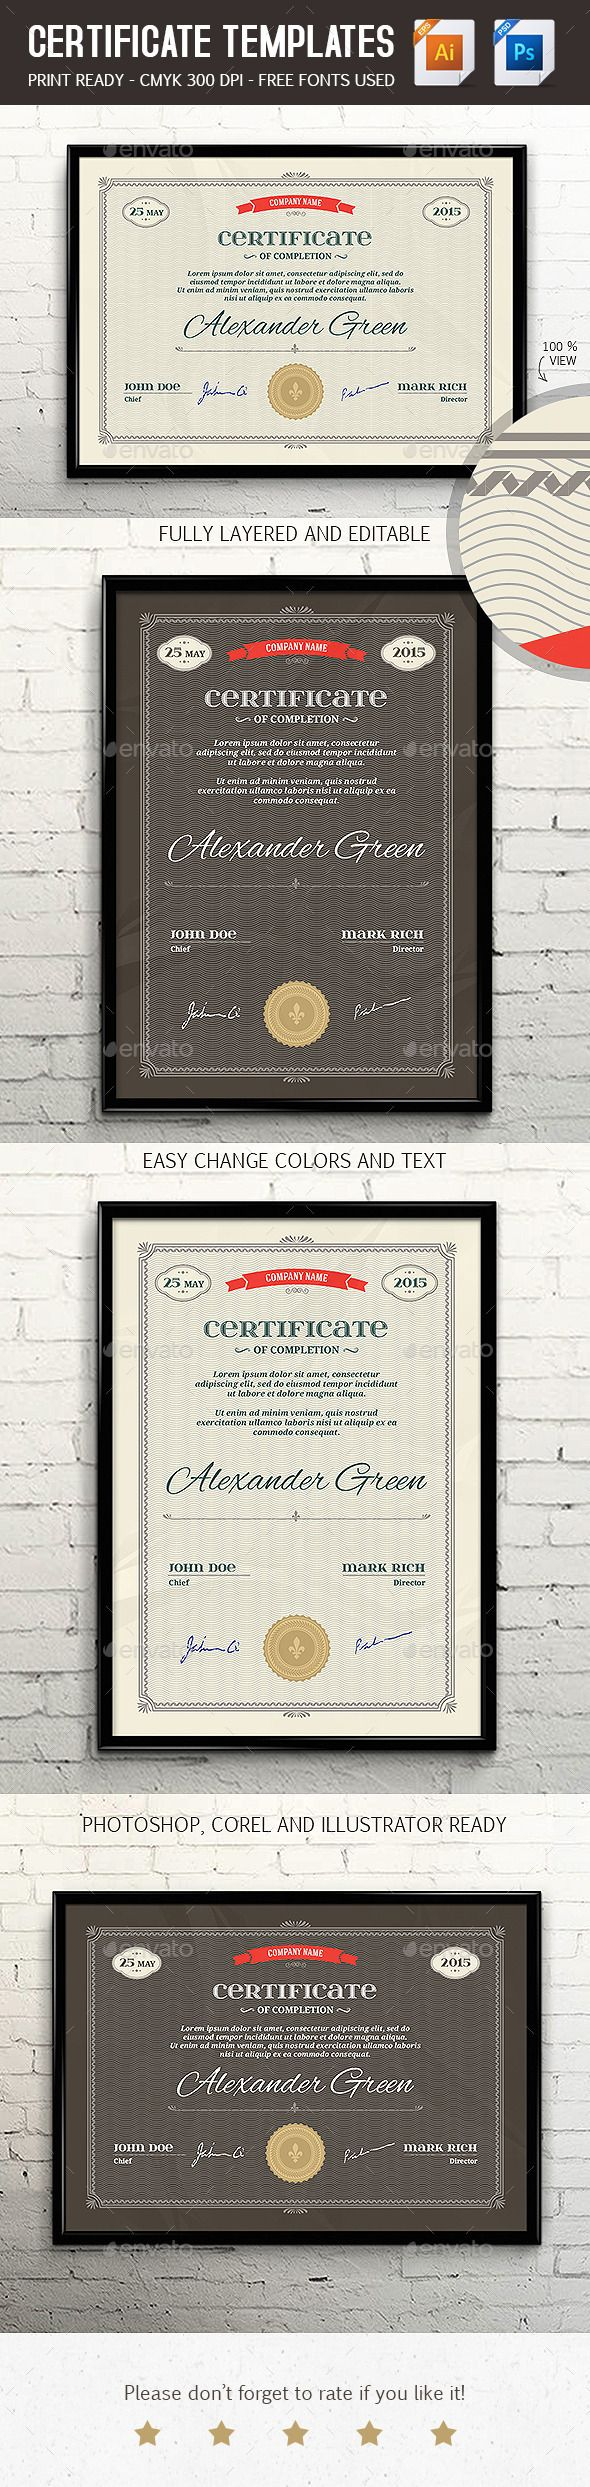 Certificate template psd eps print ready certificate templates certificate template psd eps print ready yadclub Image collections